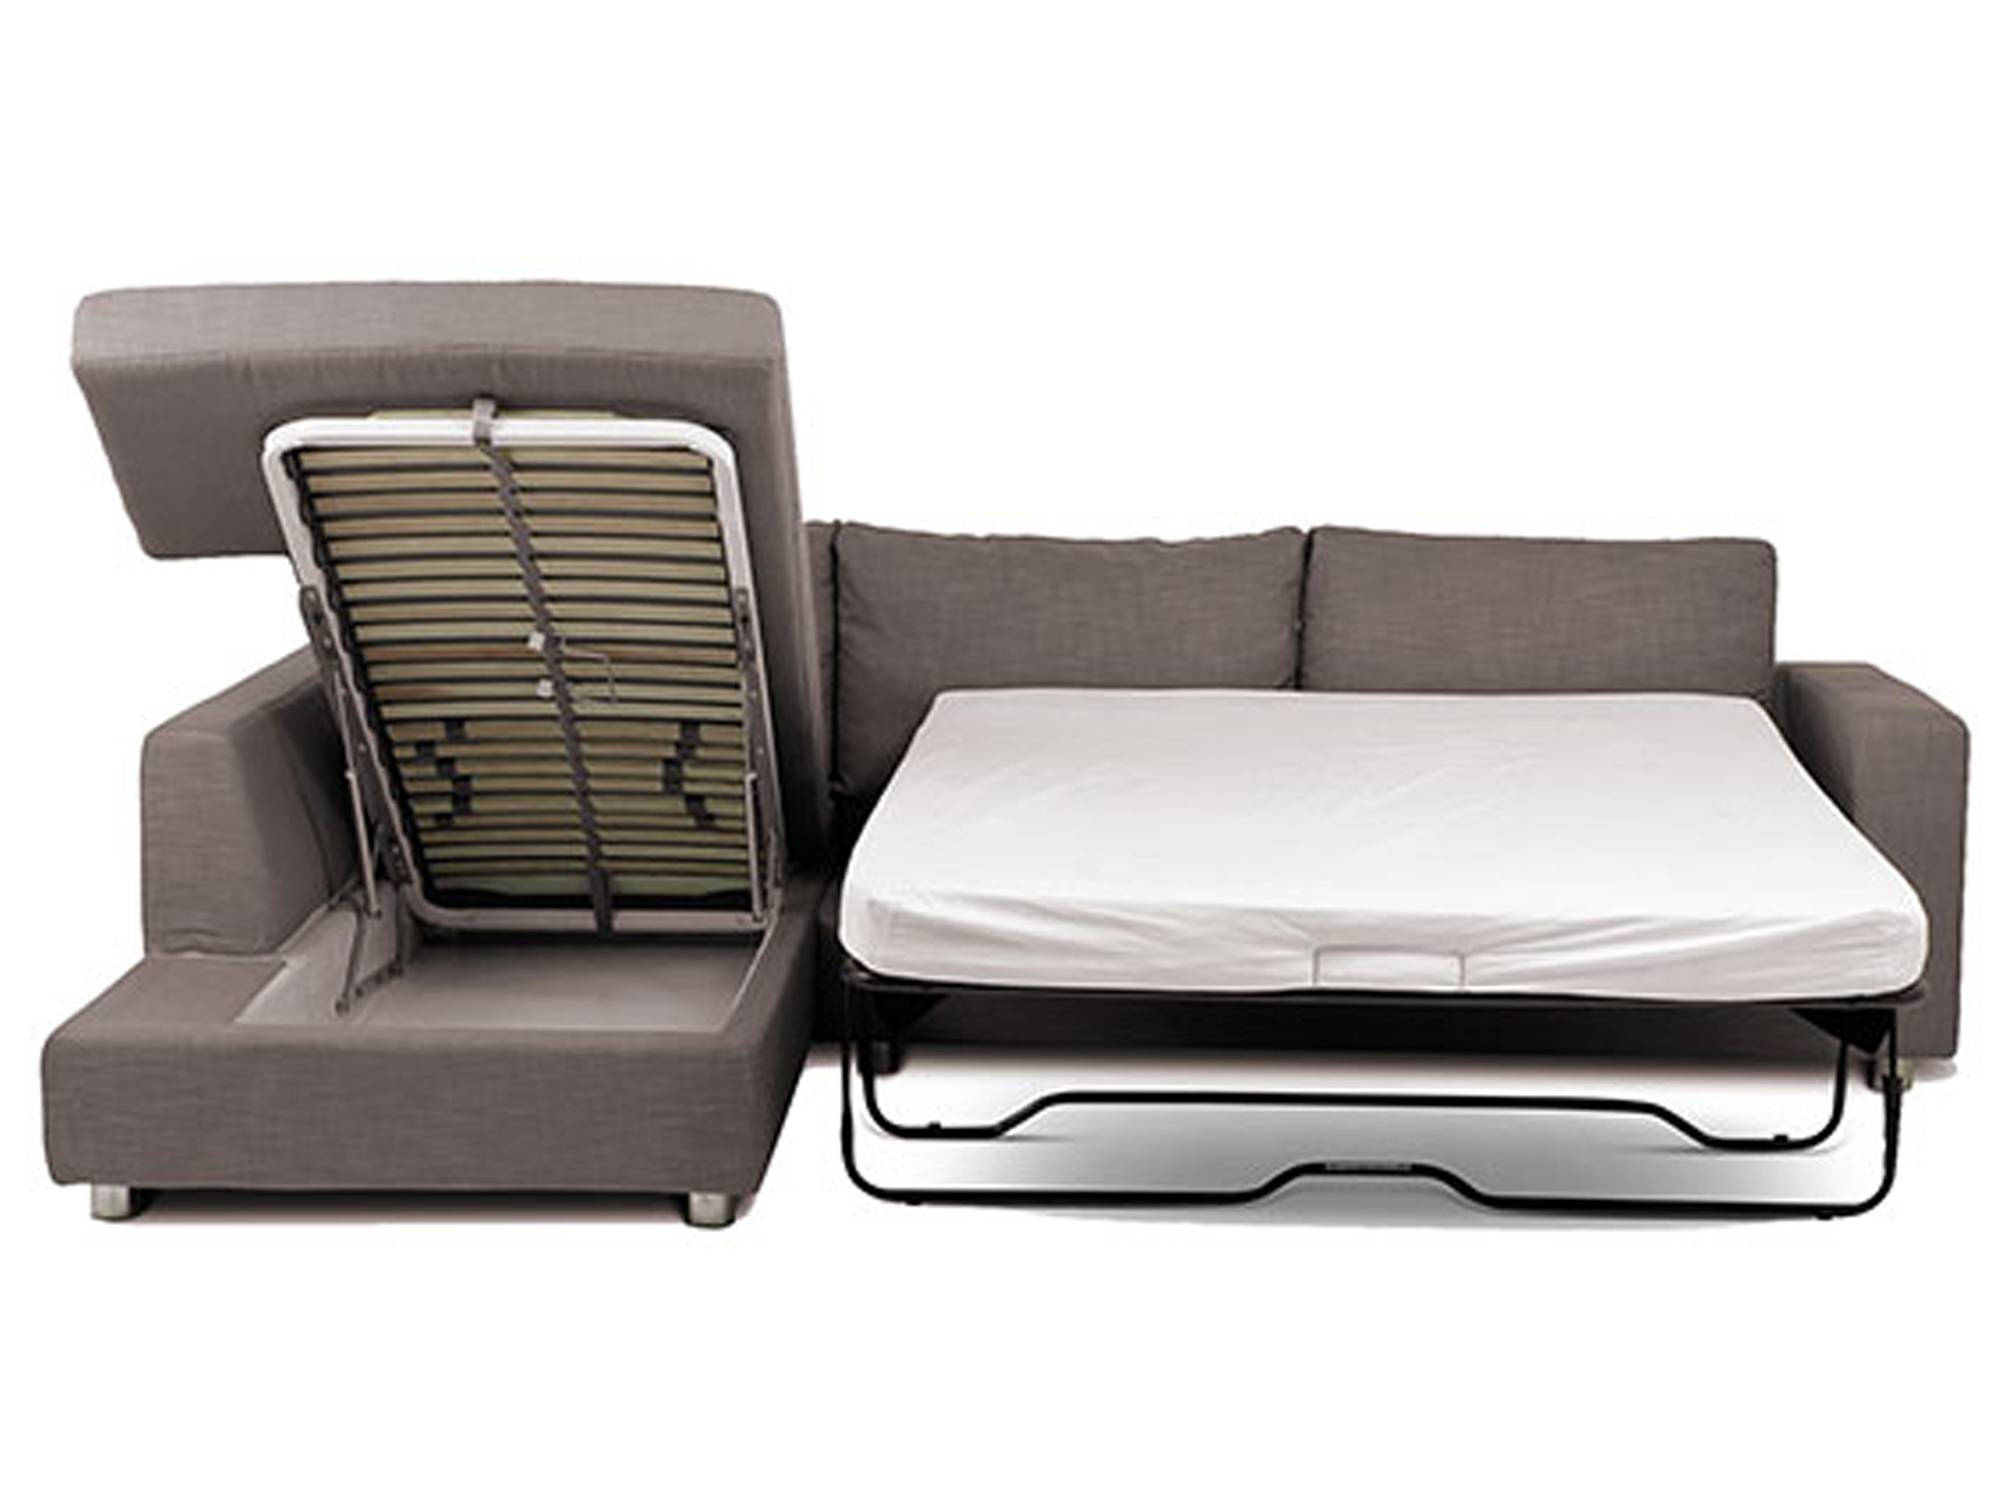 Cosy Corner Chaise Lounge Sofa Bed For Home Designing Inspiration throughout Sofa Beds With Chaise Lounge (Image 3 of 15)